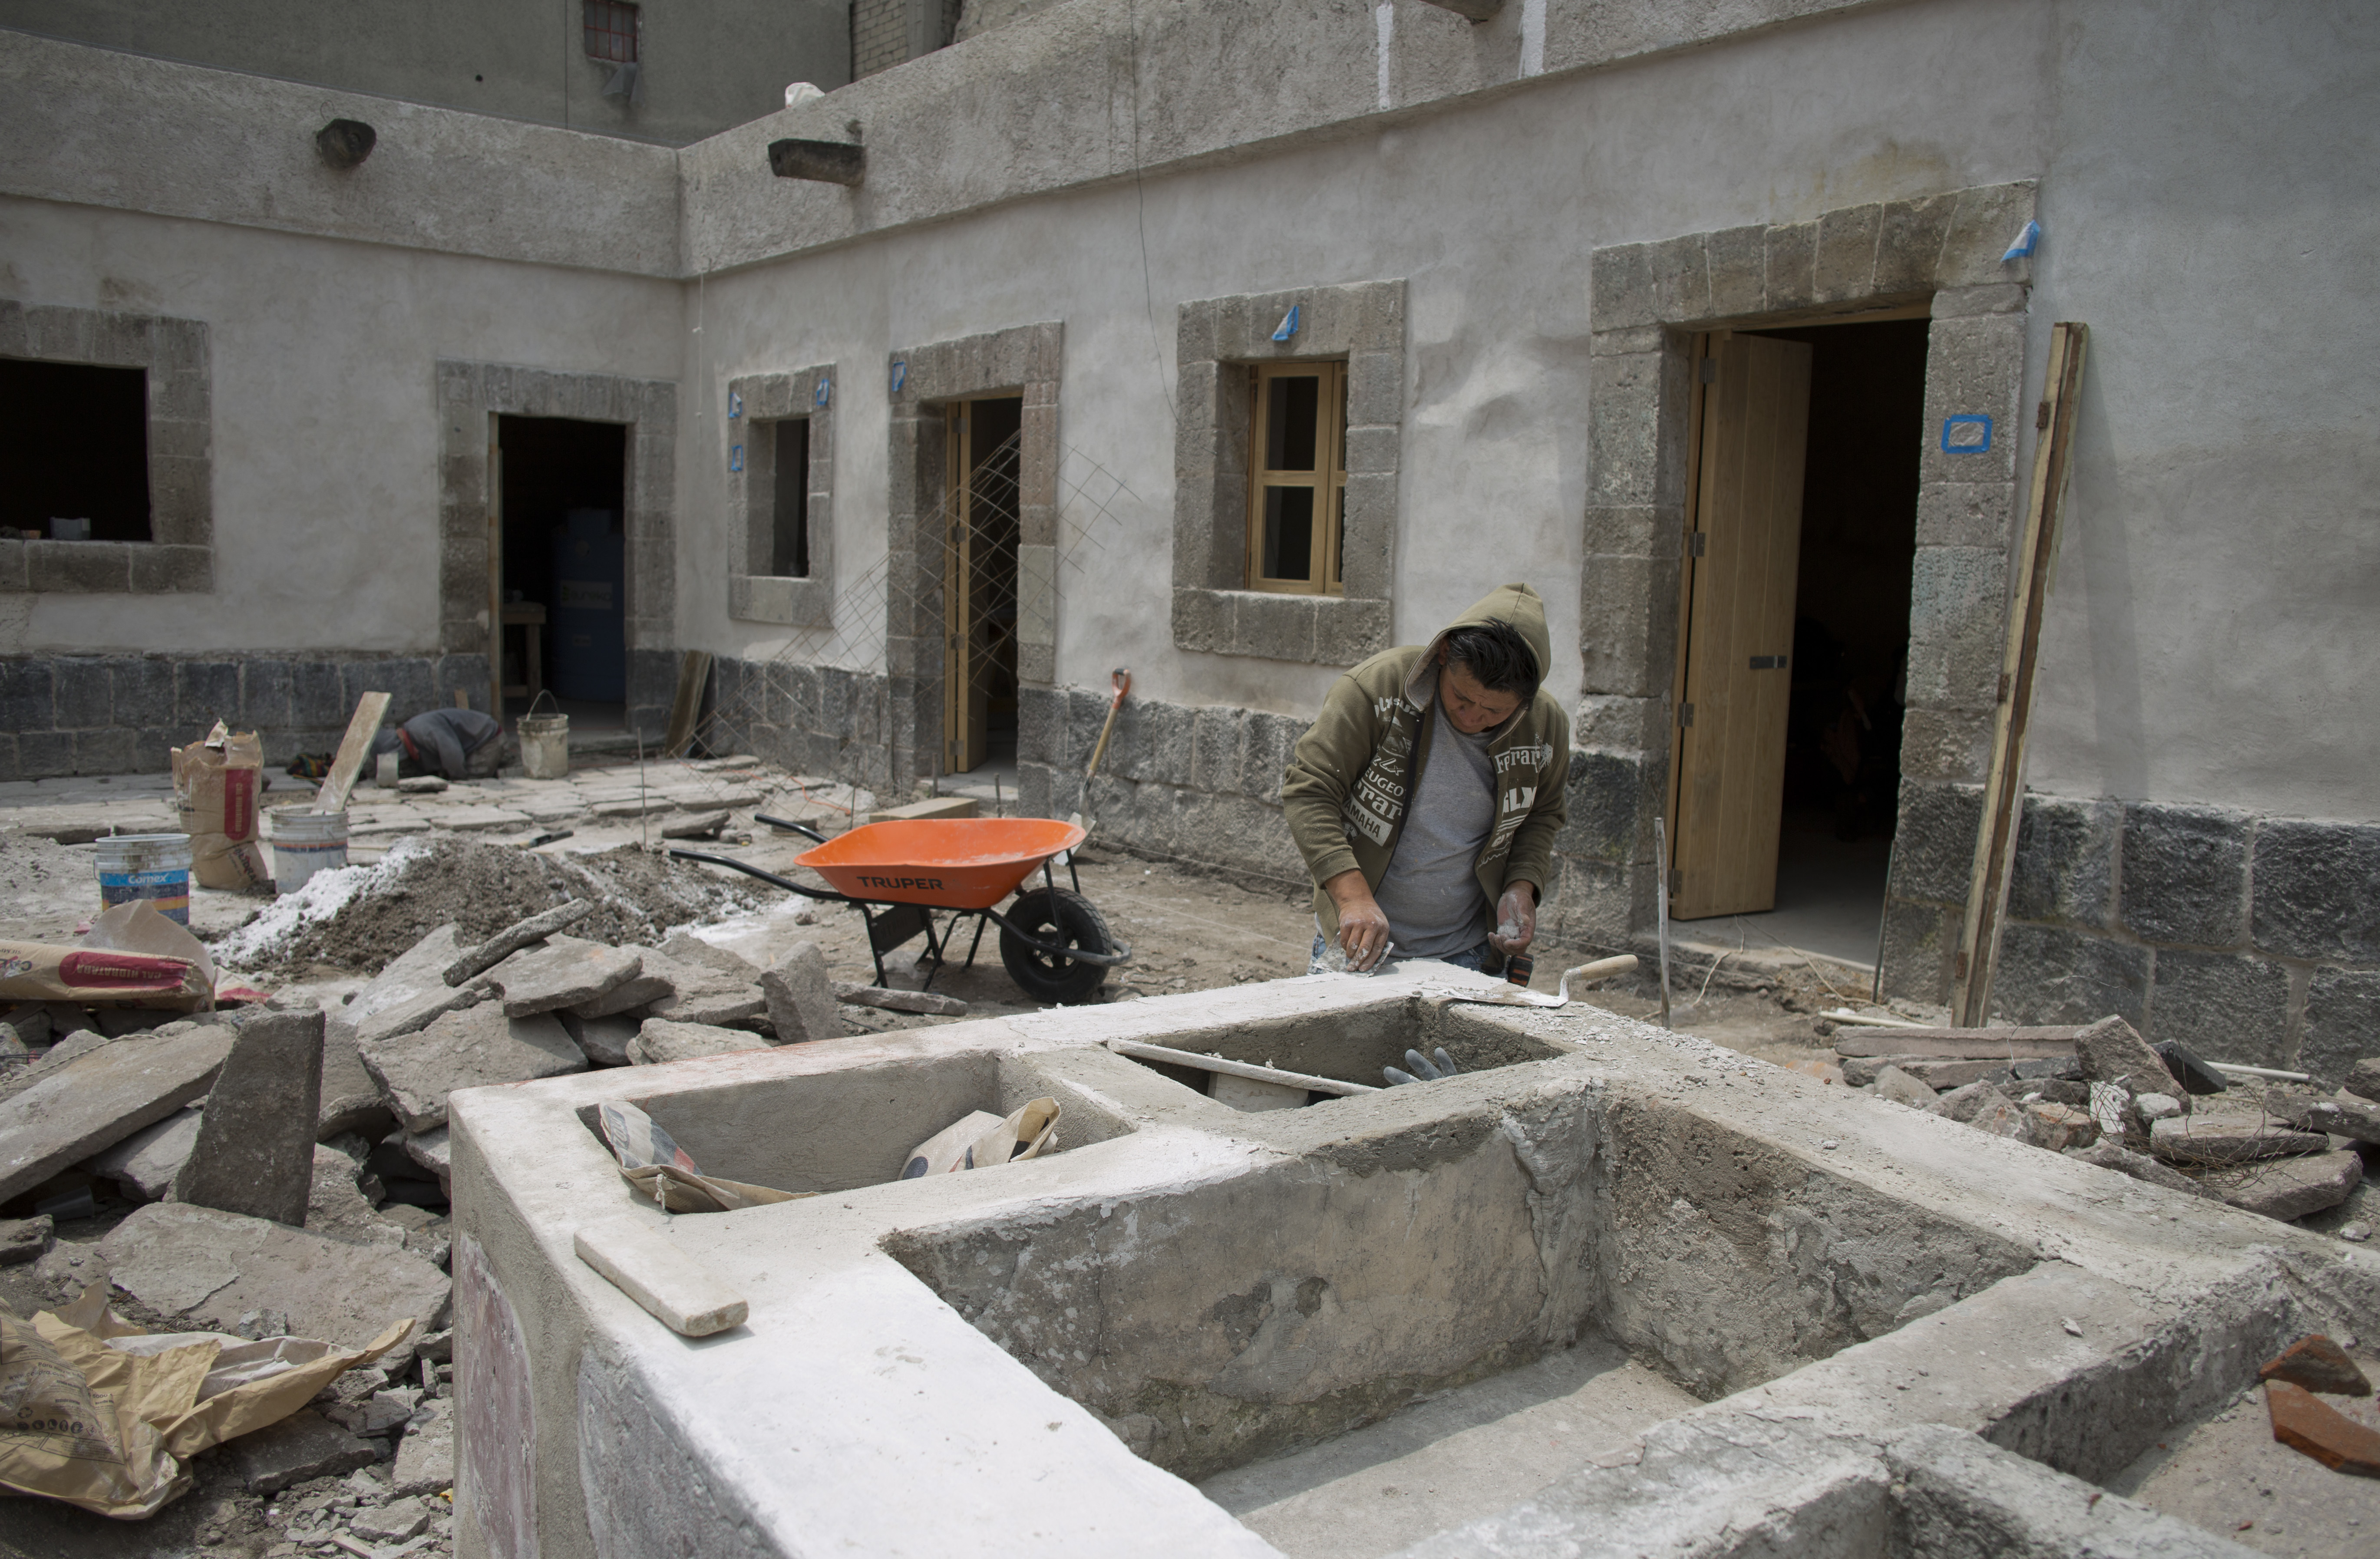 A worker restores a stone wash basin that for centuries was used to store water and for cleaning clothes, in the courtyard of 25 Manzanares Street, in Mexico City, Sept. 10, 2018.